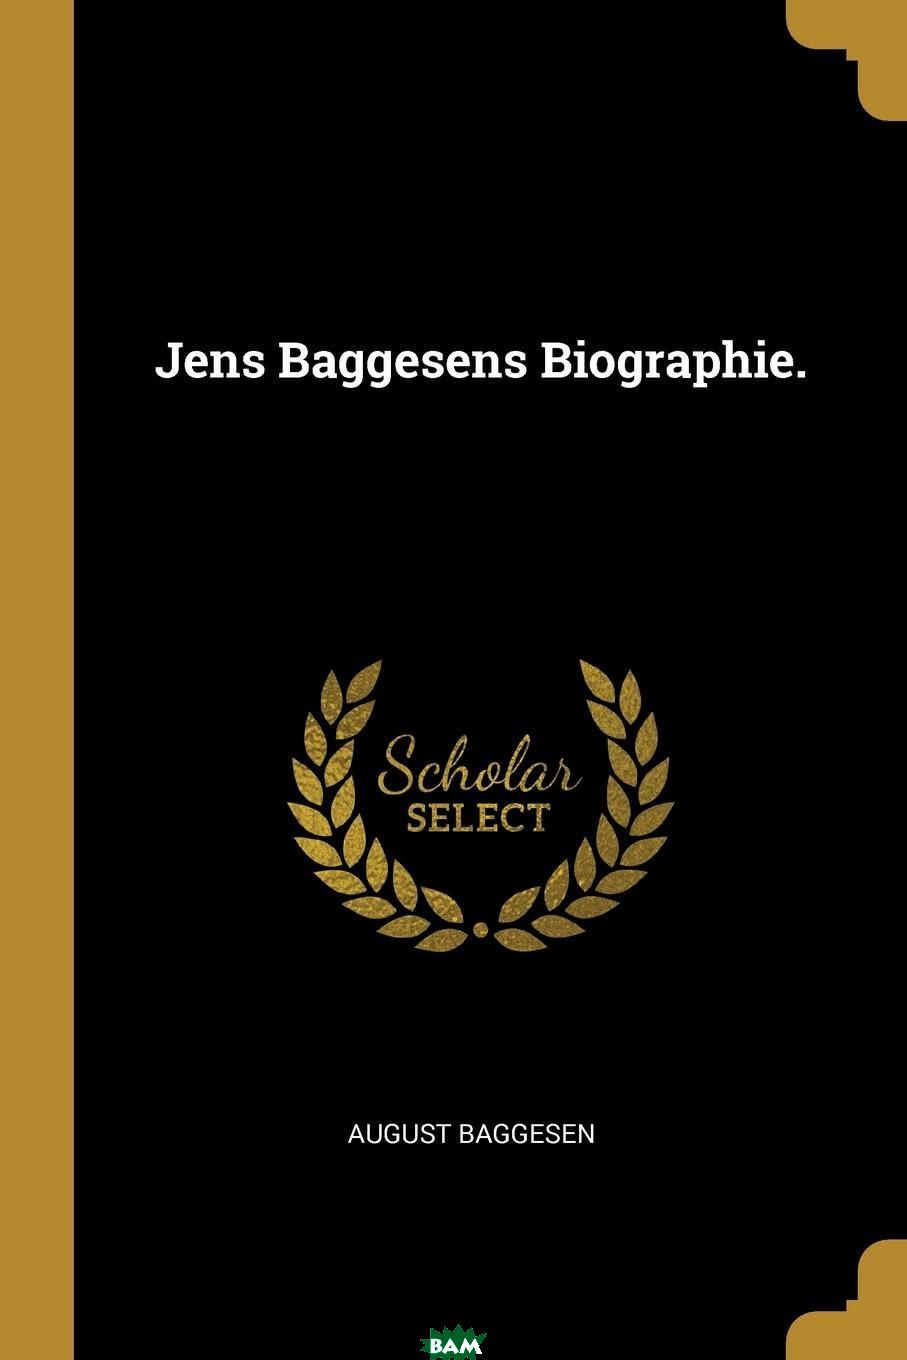 Jens Baggesens Biographie.